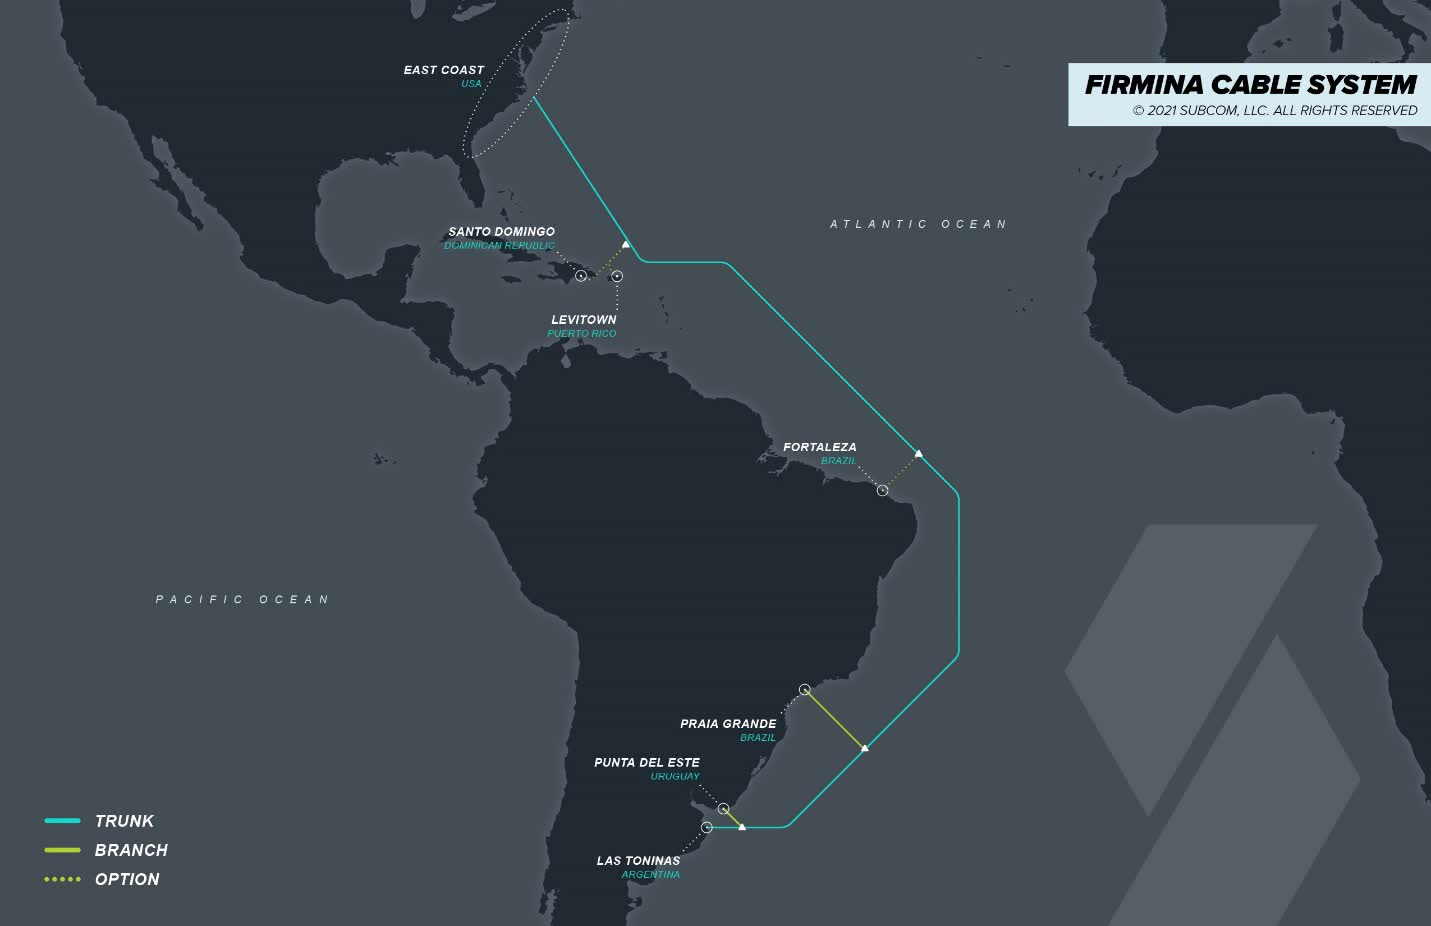 Google's new Firmina submarine cable will connect the United States